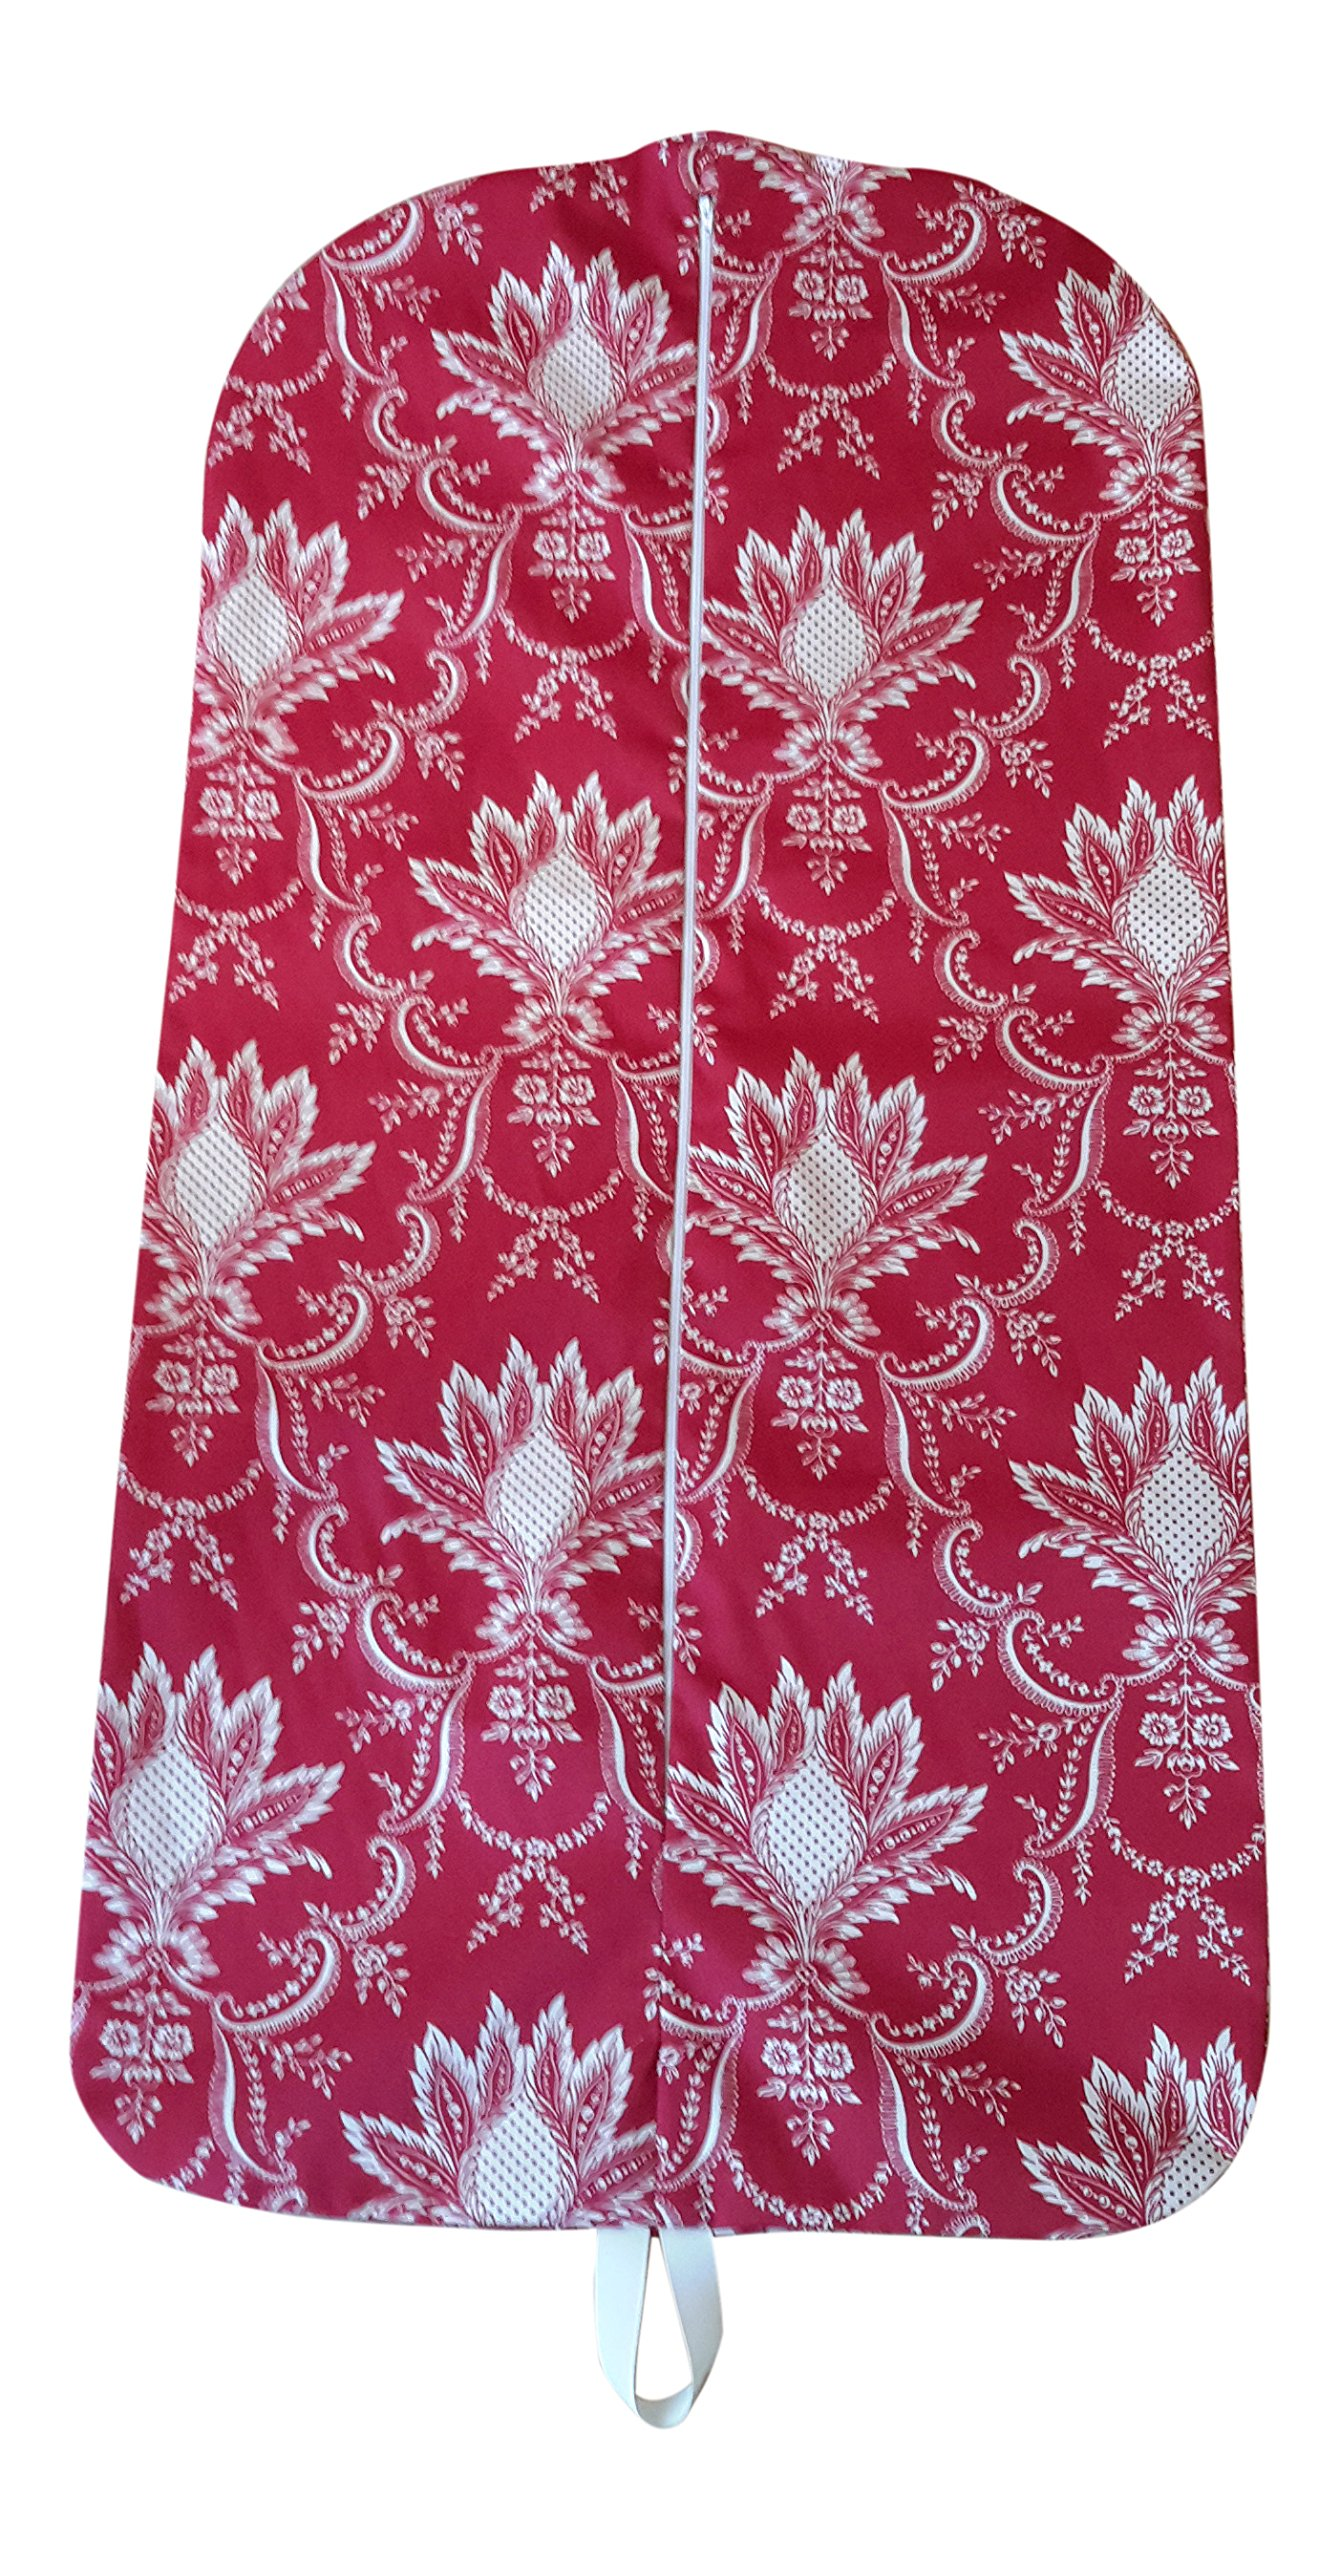 Carry It Well Women's Red Floral Medallion Hanging Garment Bag